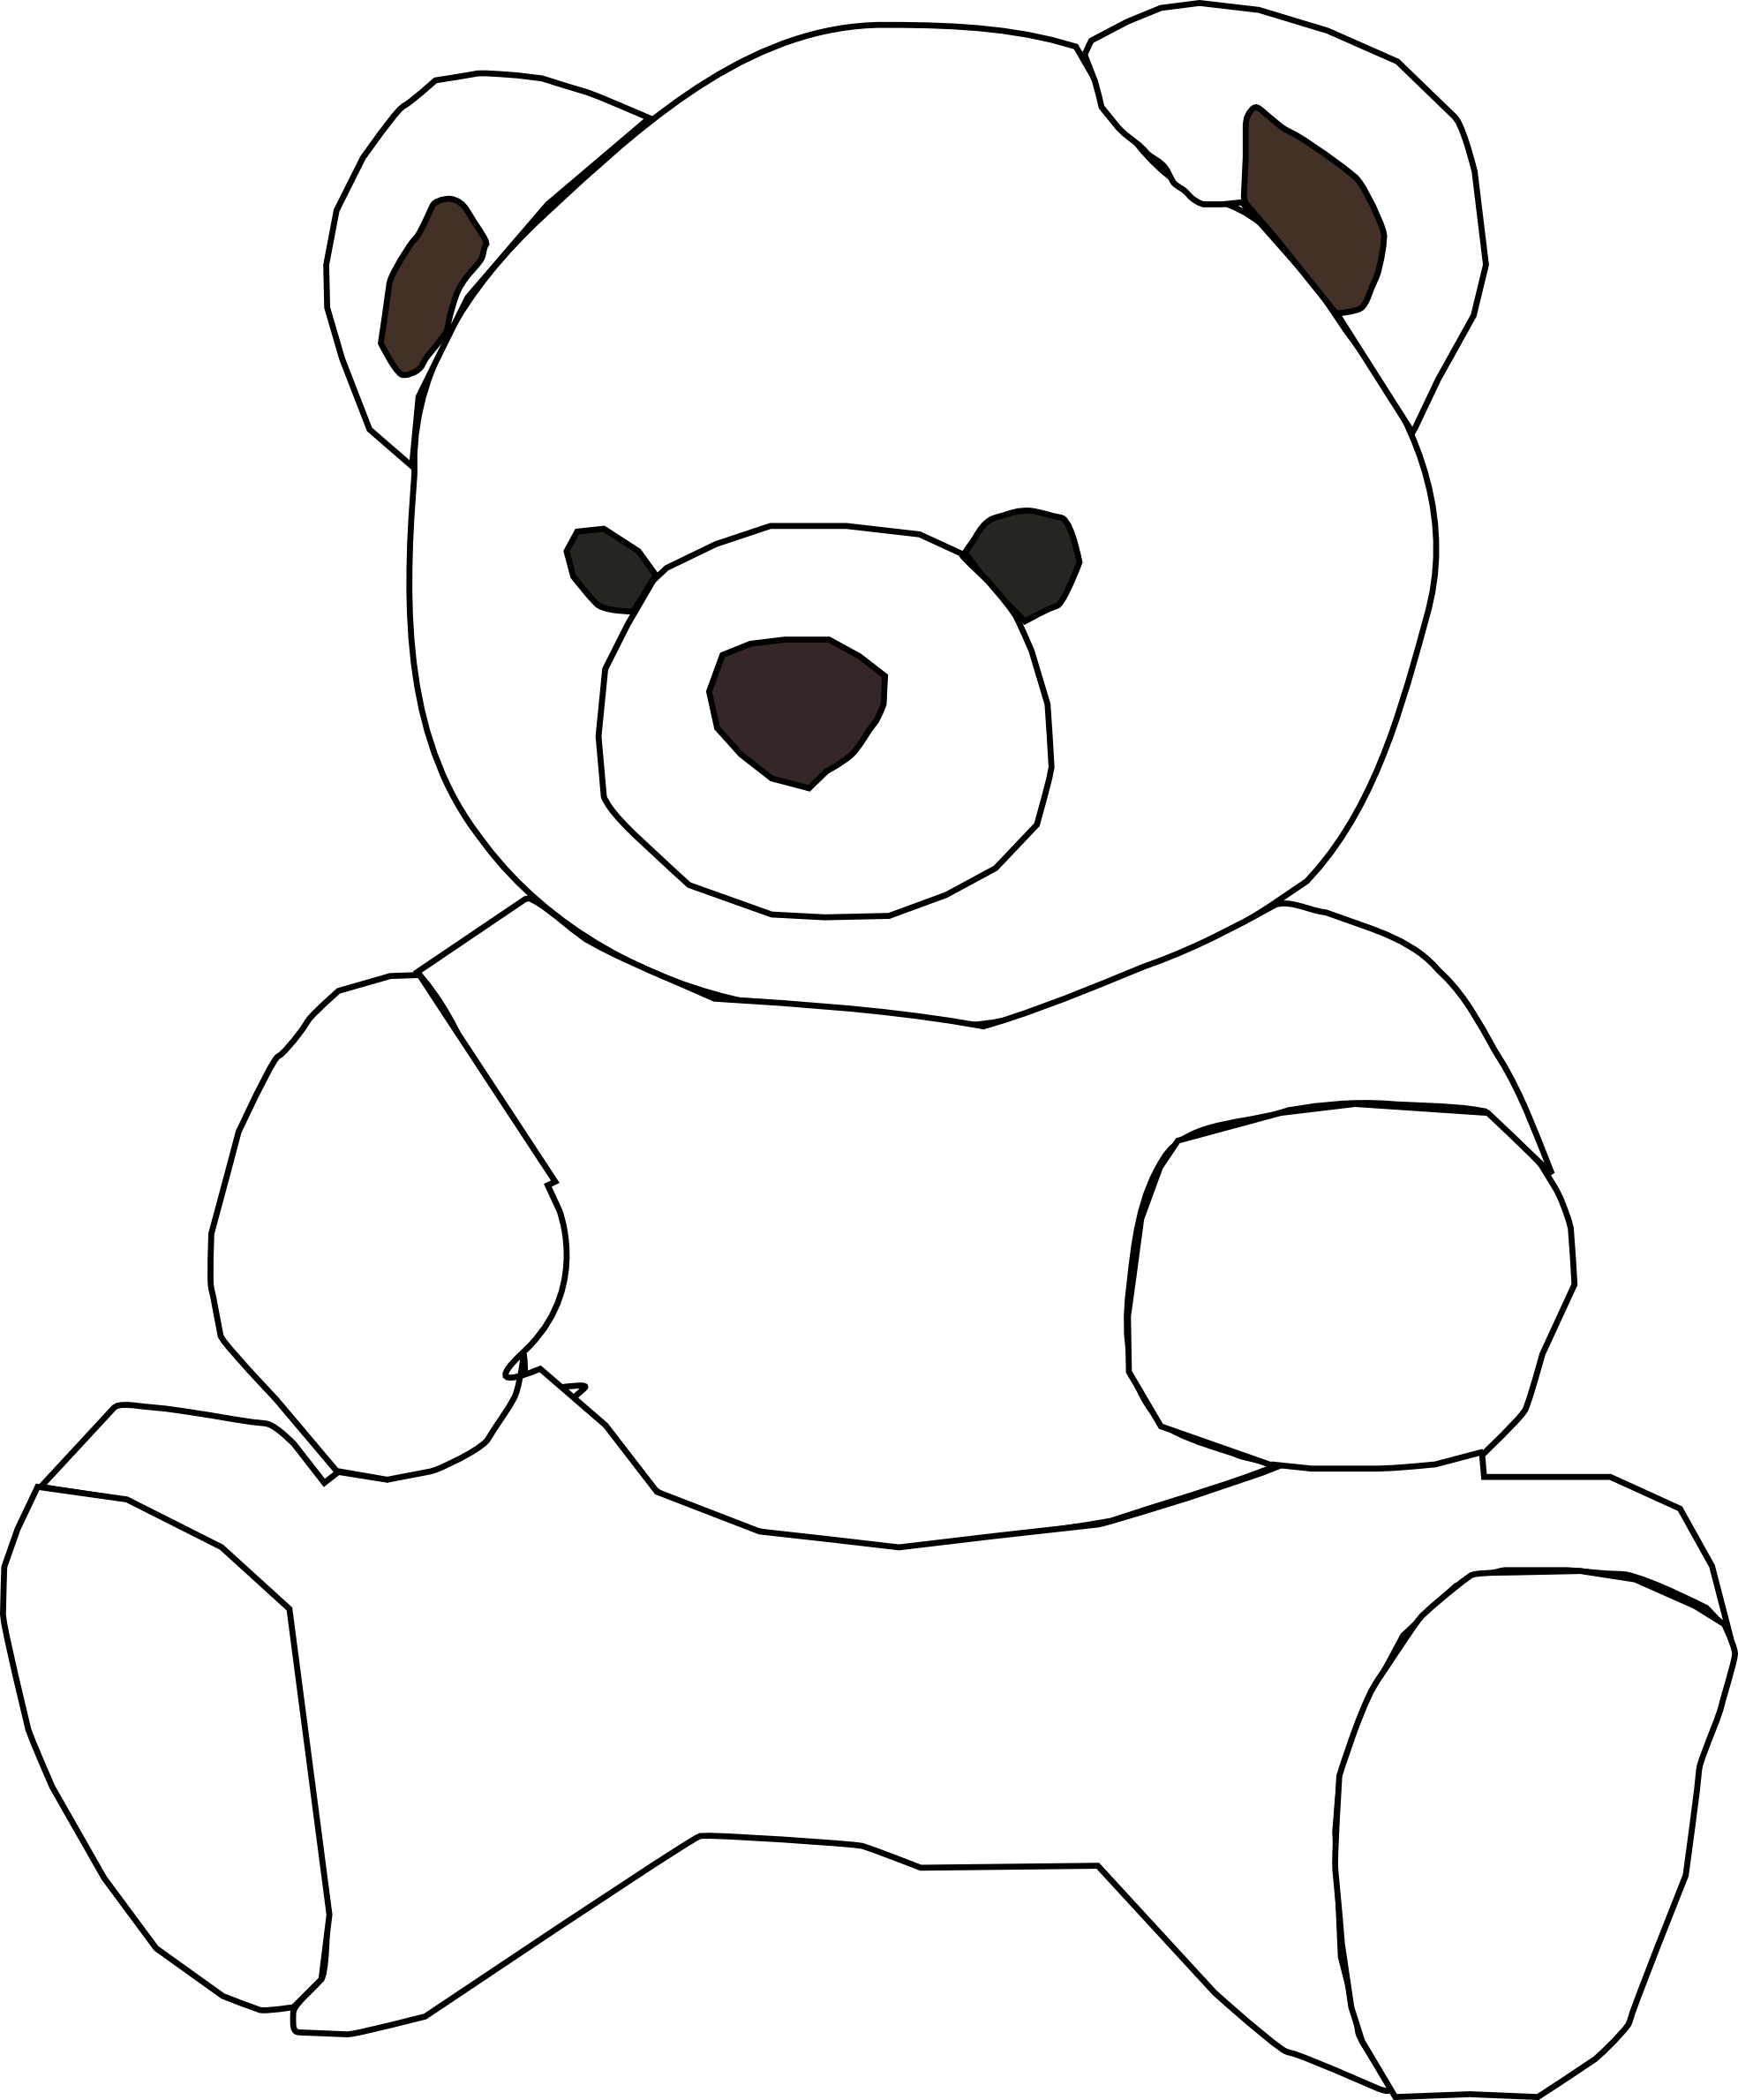 Free Teddy Bear Outline Download Free Clip Art Free Clip